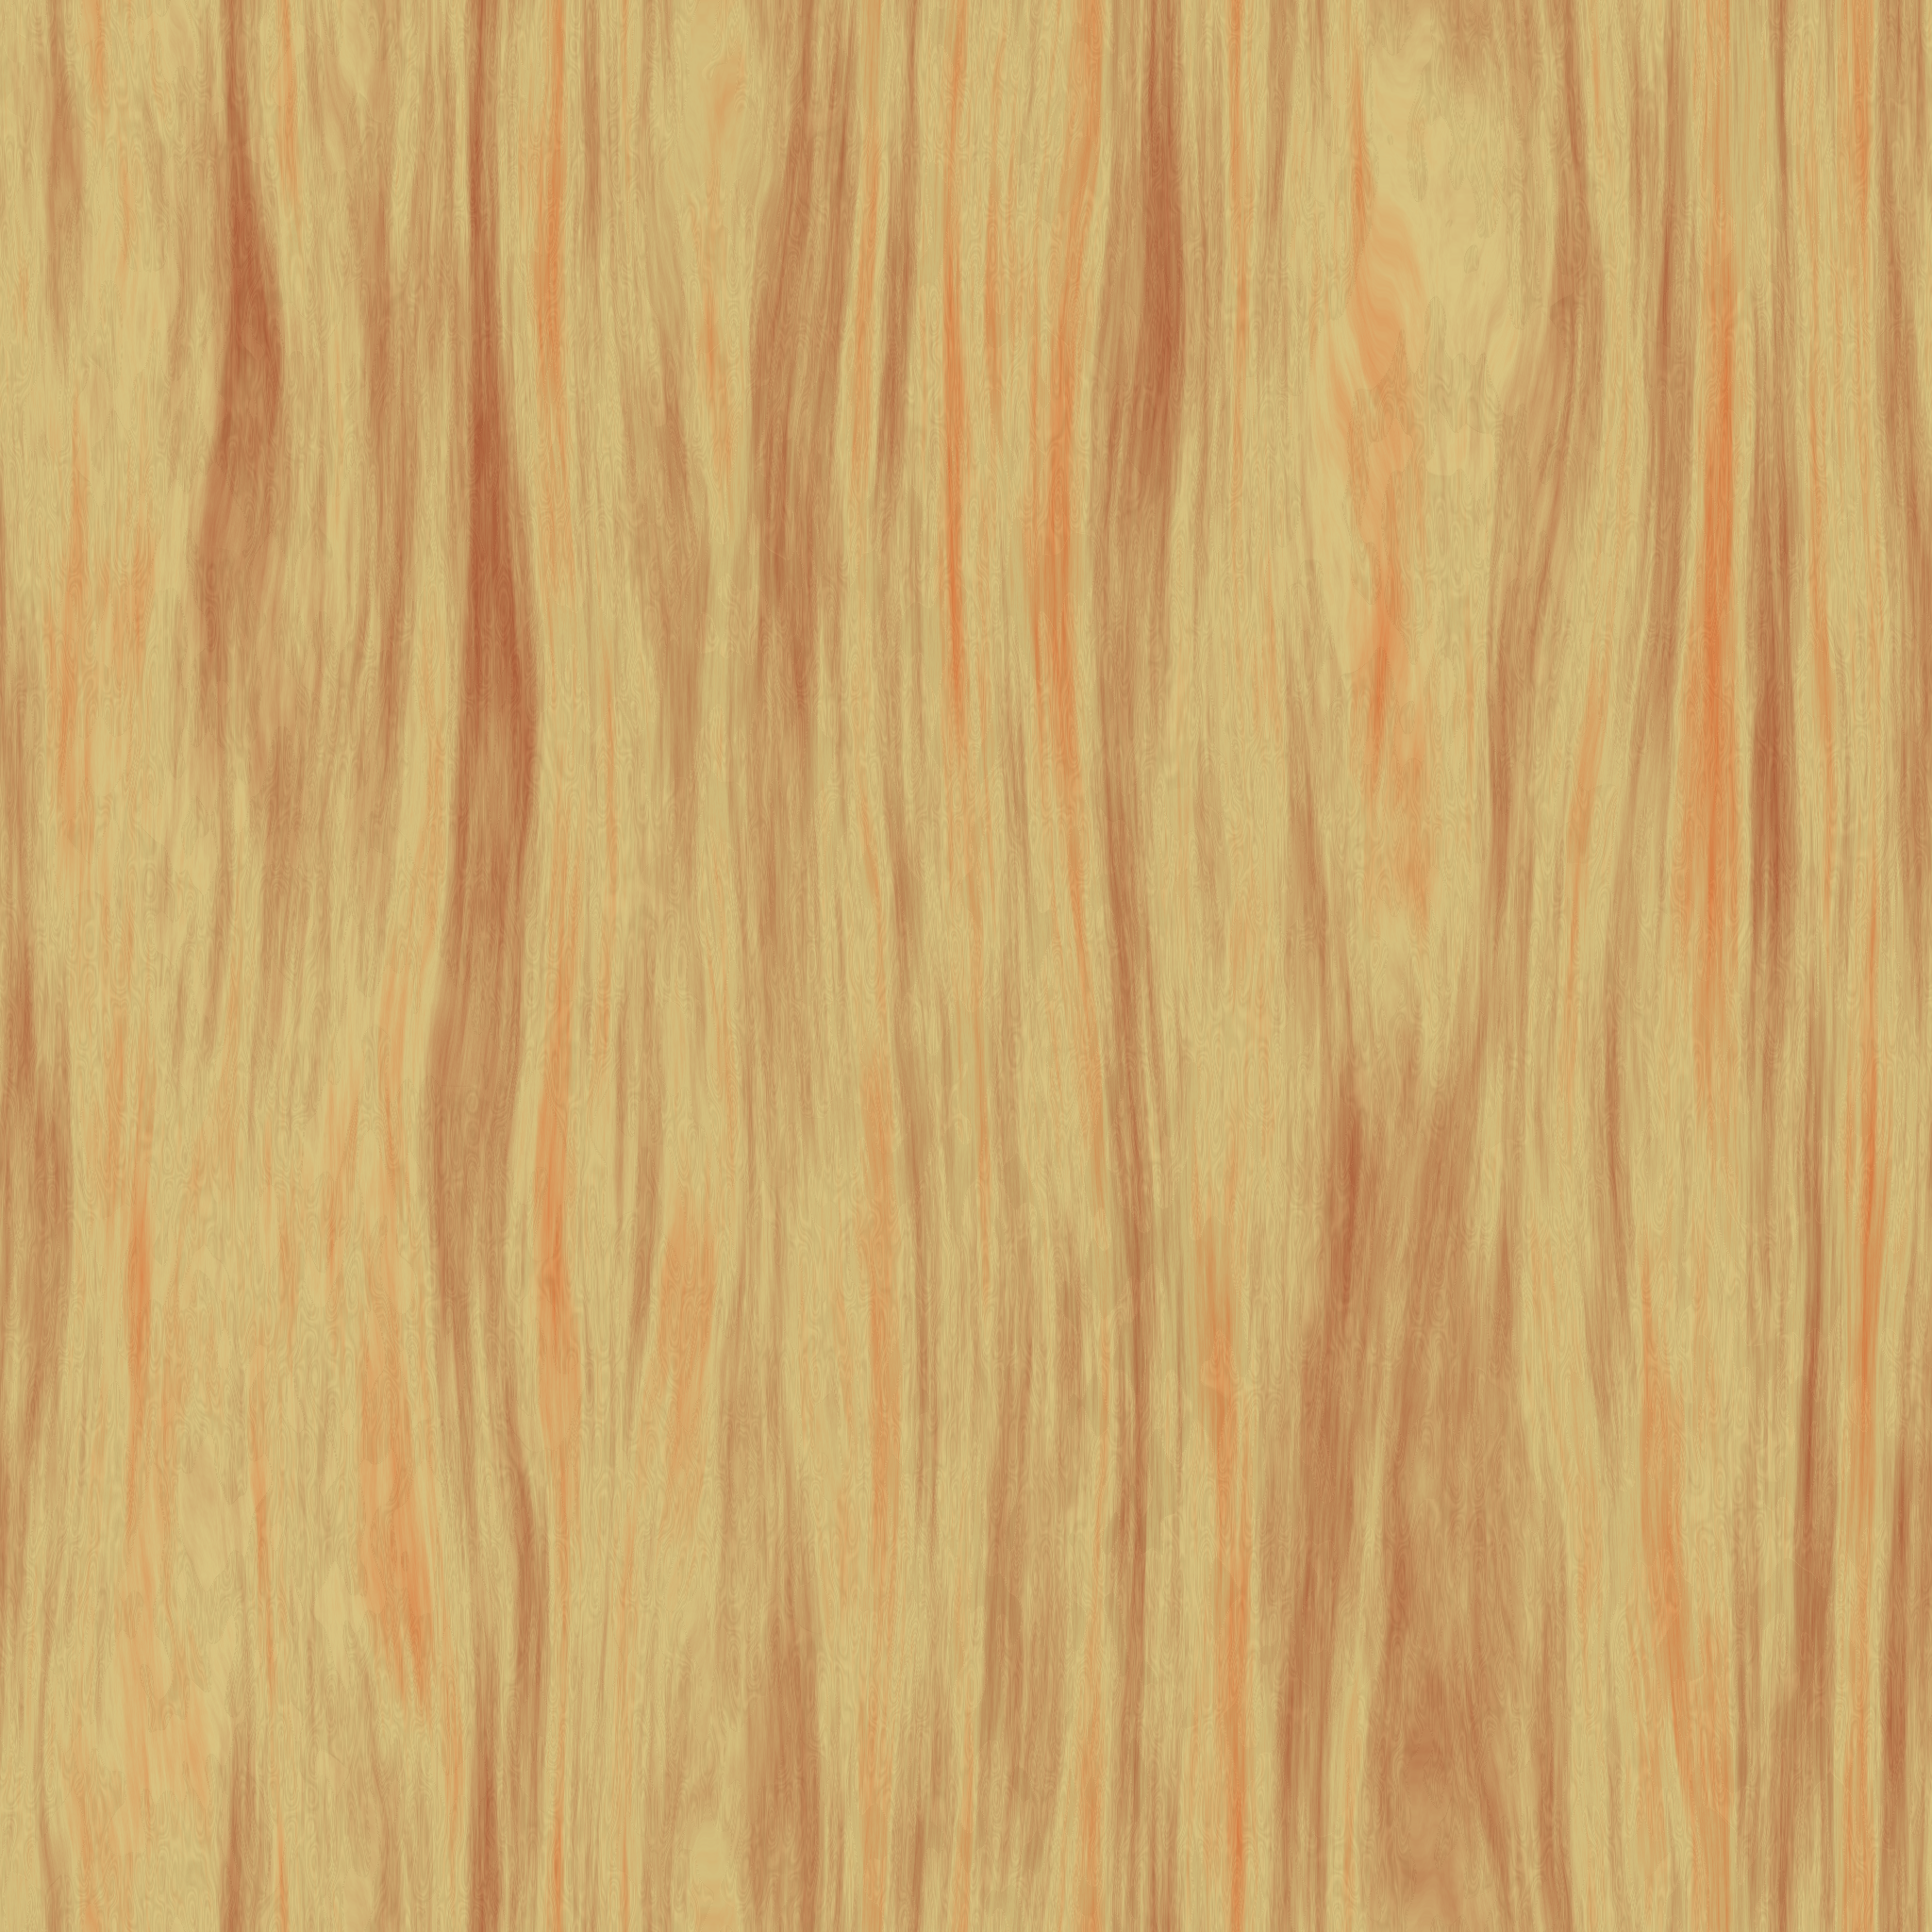 tileable wood texture. Zero CC Tileable Wood Texture, Made By Me Procedurally In Neo Texture Edit. CC0